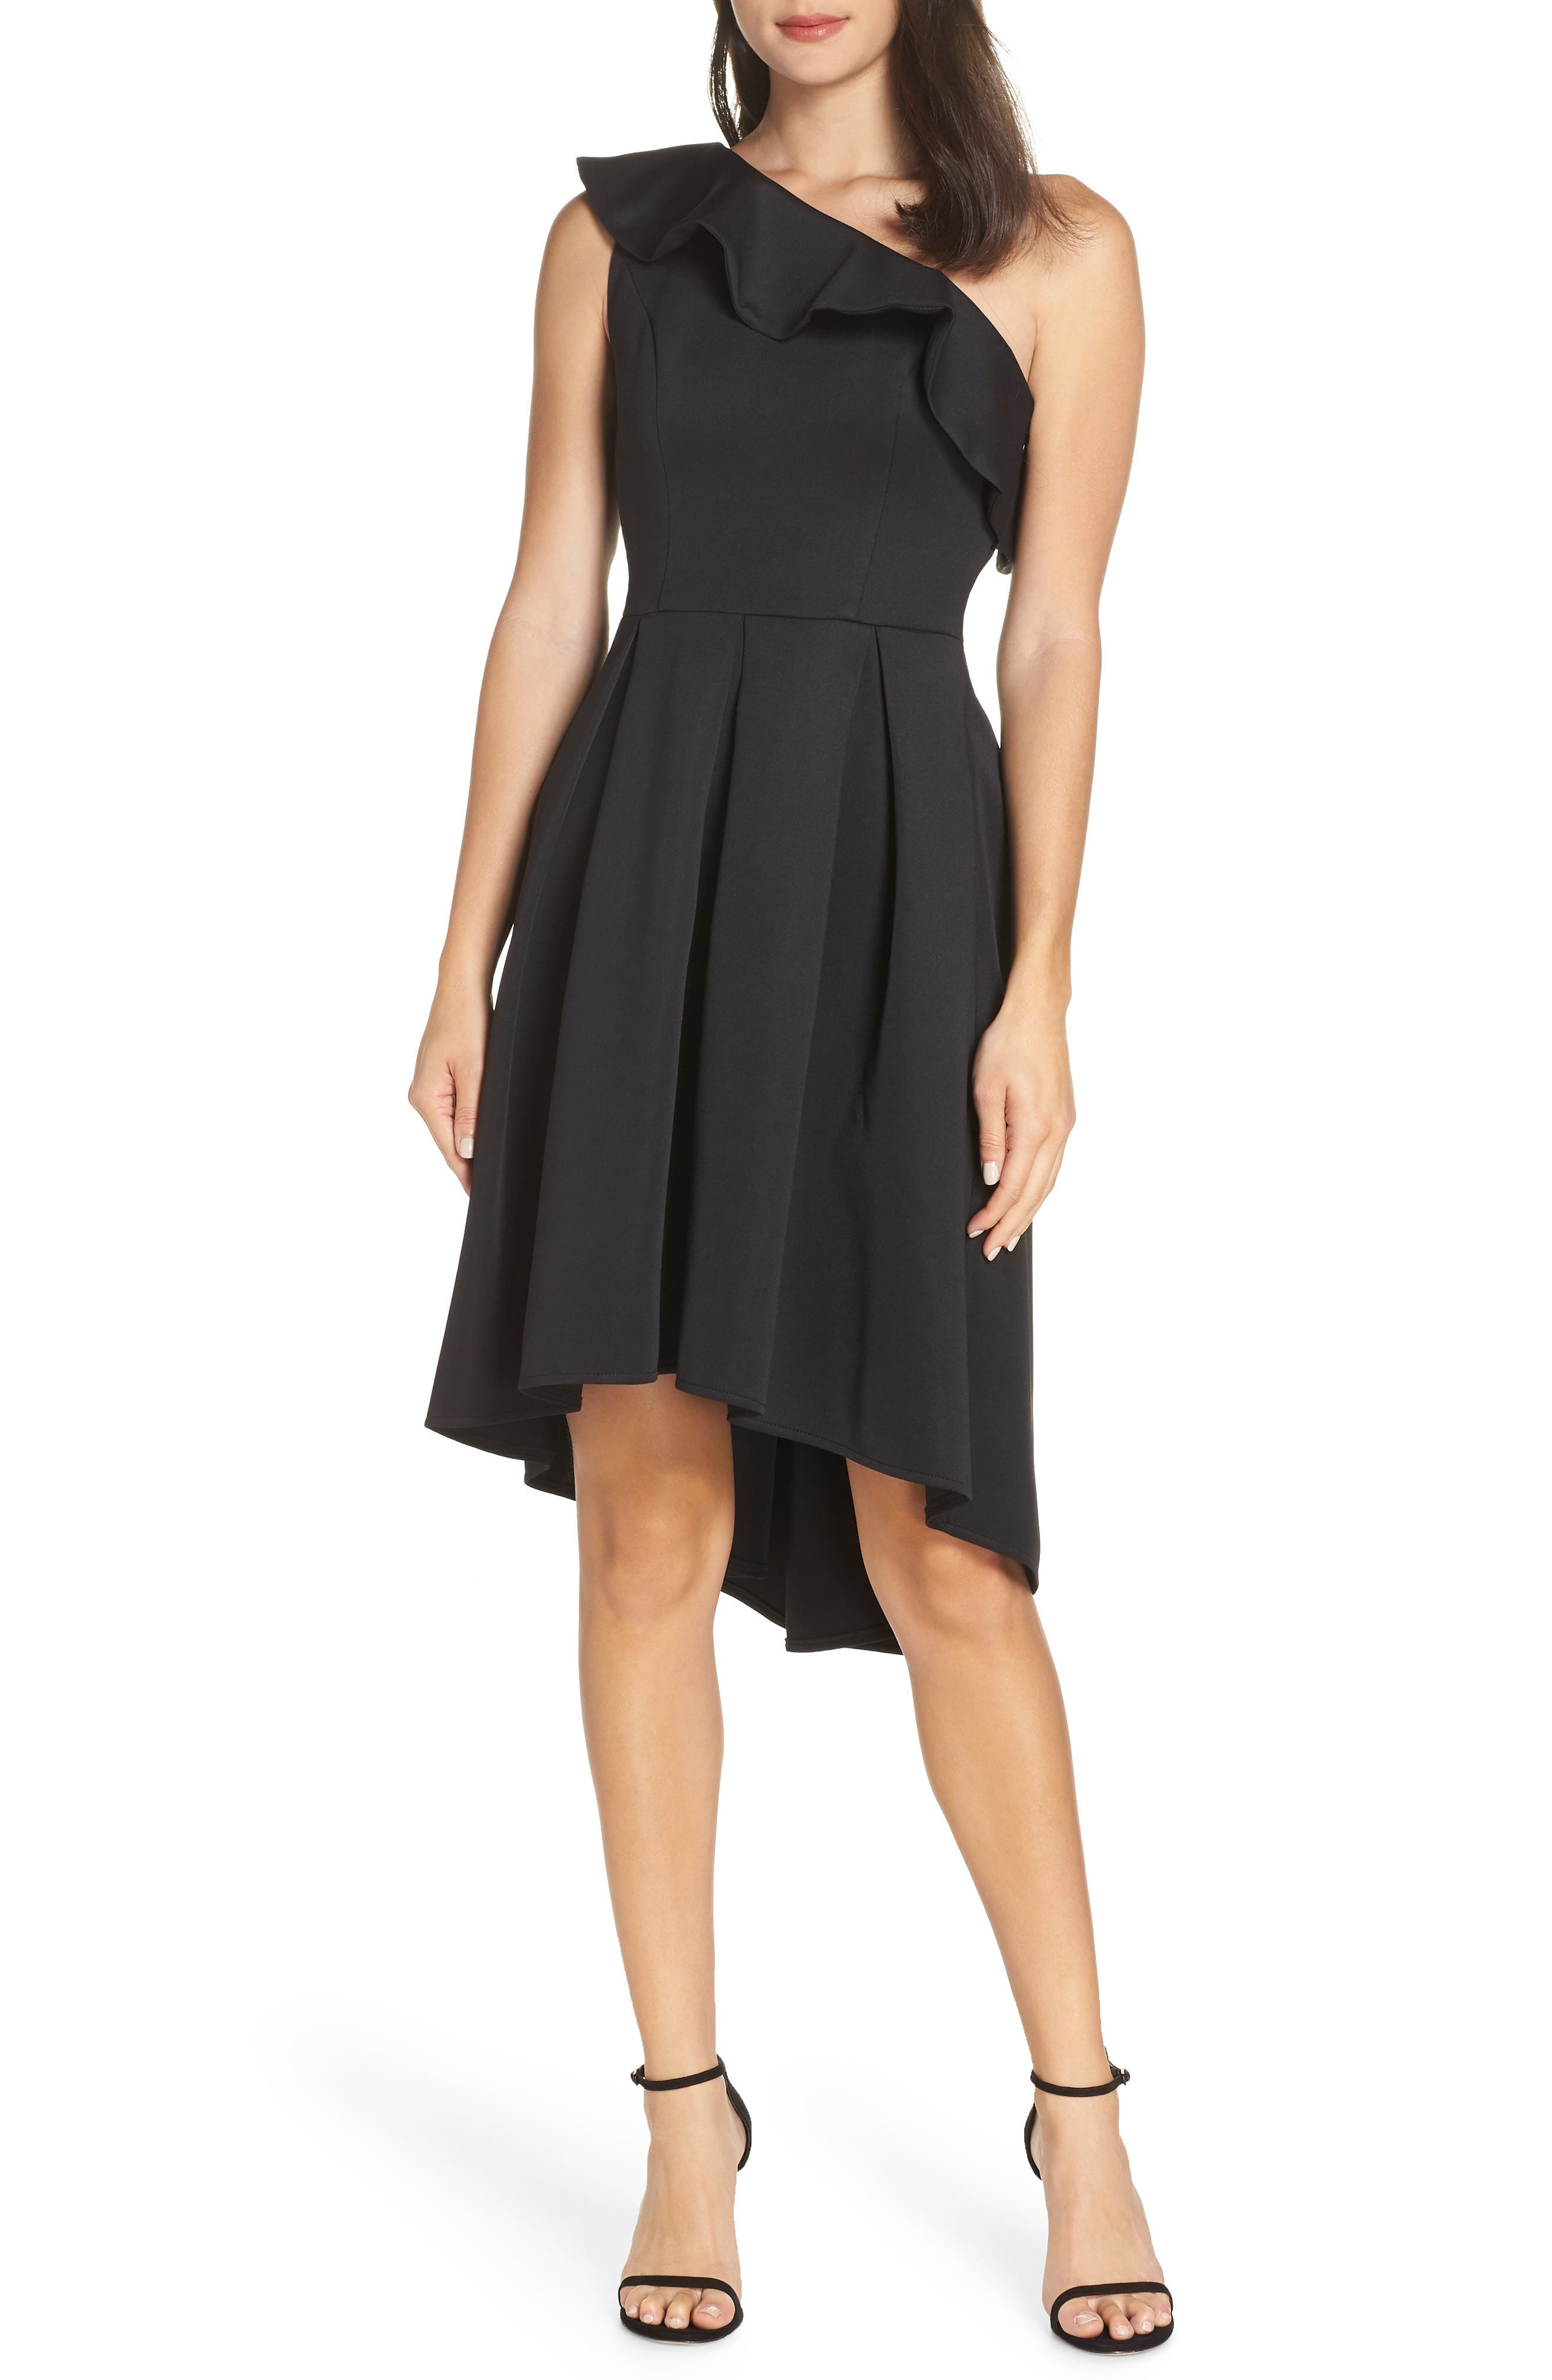 Chi Chi London One-Shoulder High/low Cocktail Dress